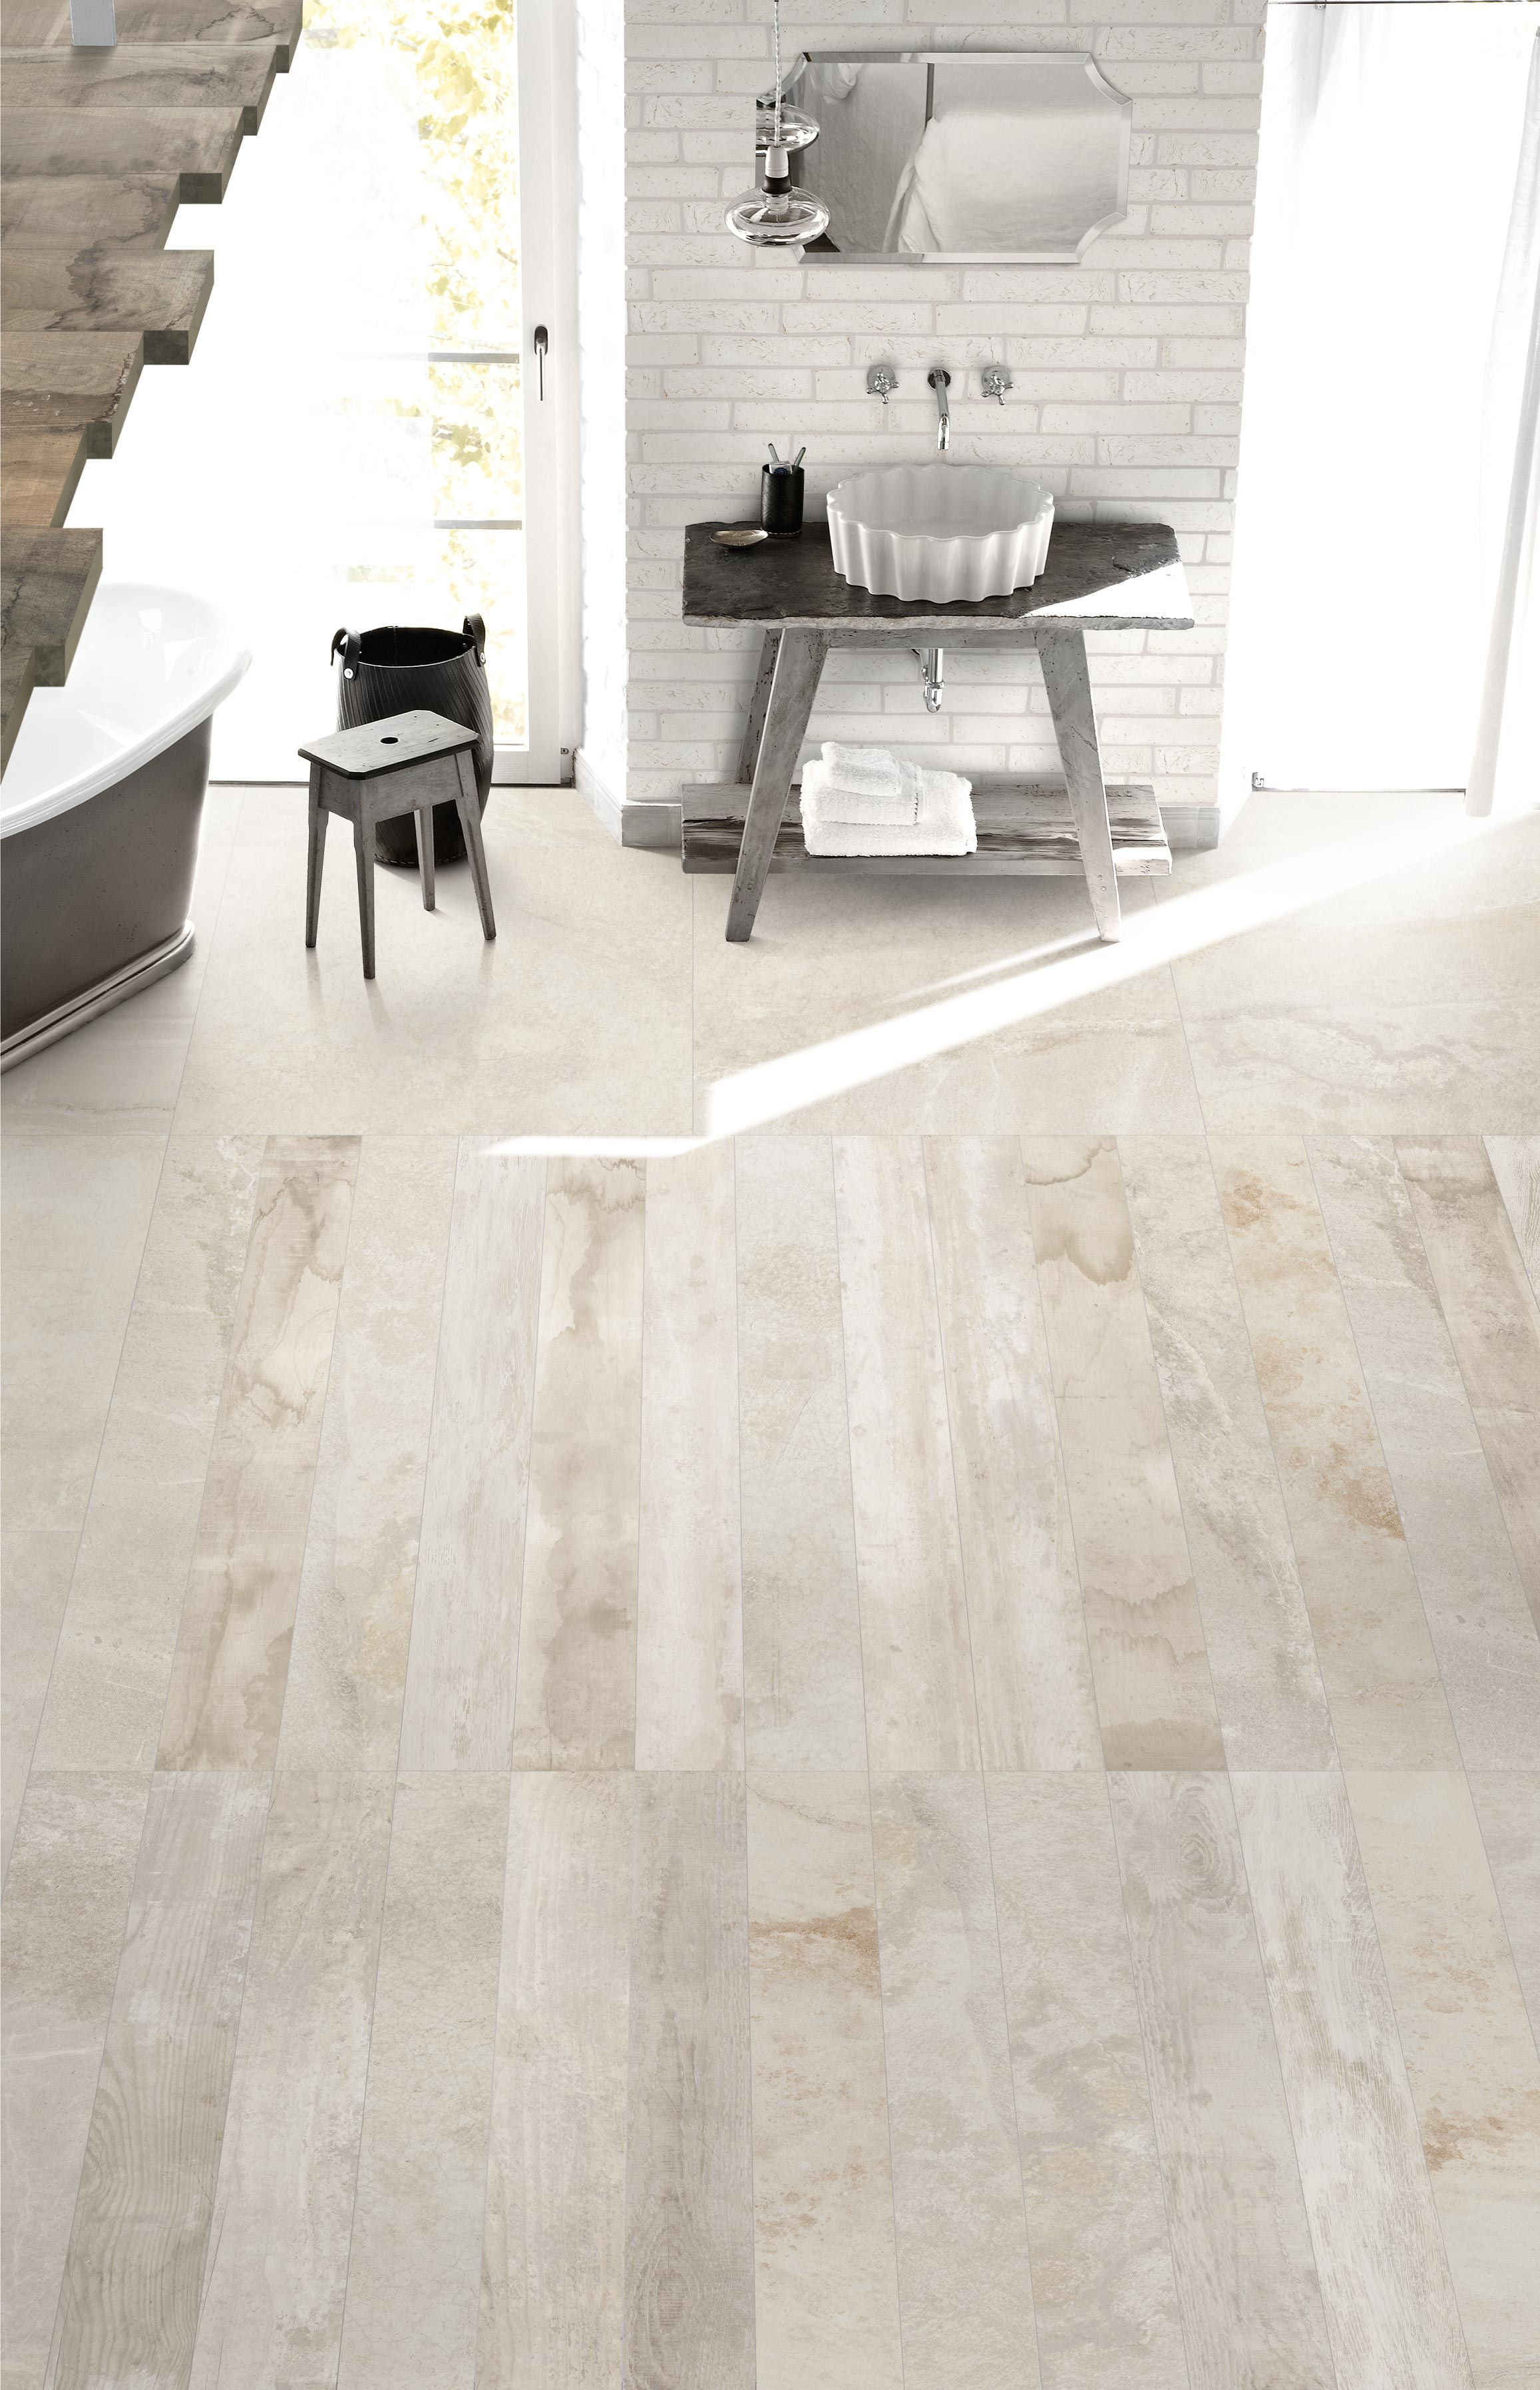 inessence porcelain floor tile in sabbia mix 6x48. http://www